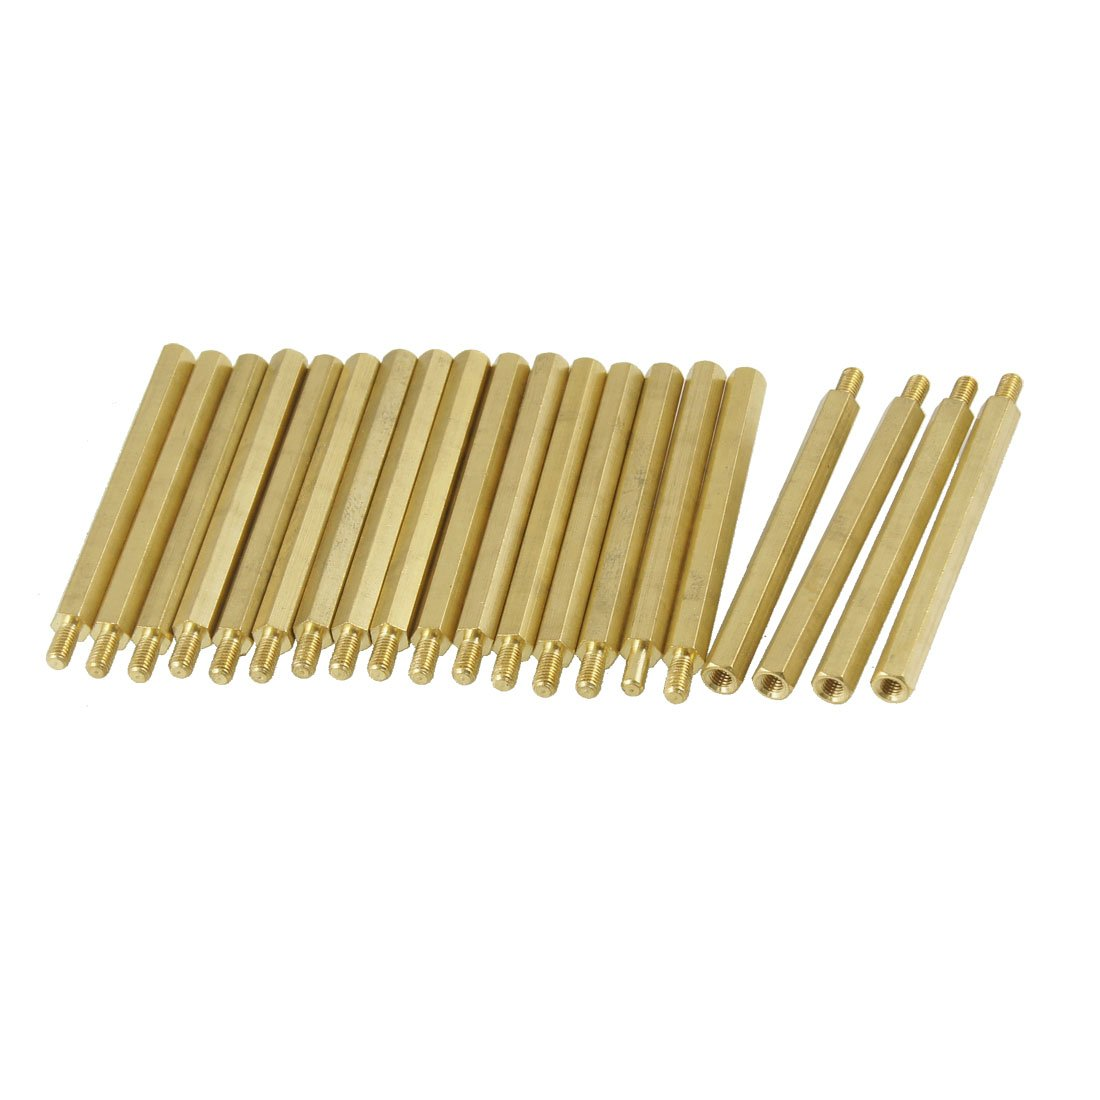 CSS 20 Pcs M3 Male x M3 Female Hexagonal Thread PCB Standoff Spacer 50mm Body Length 20pcs m3 copper standoff spacer stud male to female m3 4 6mm hexagonal stud length 4 5 6 7 8 9 10 11 12mm